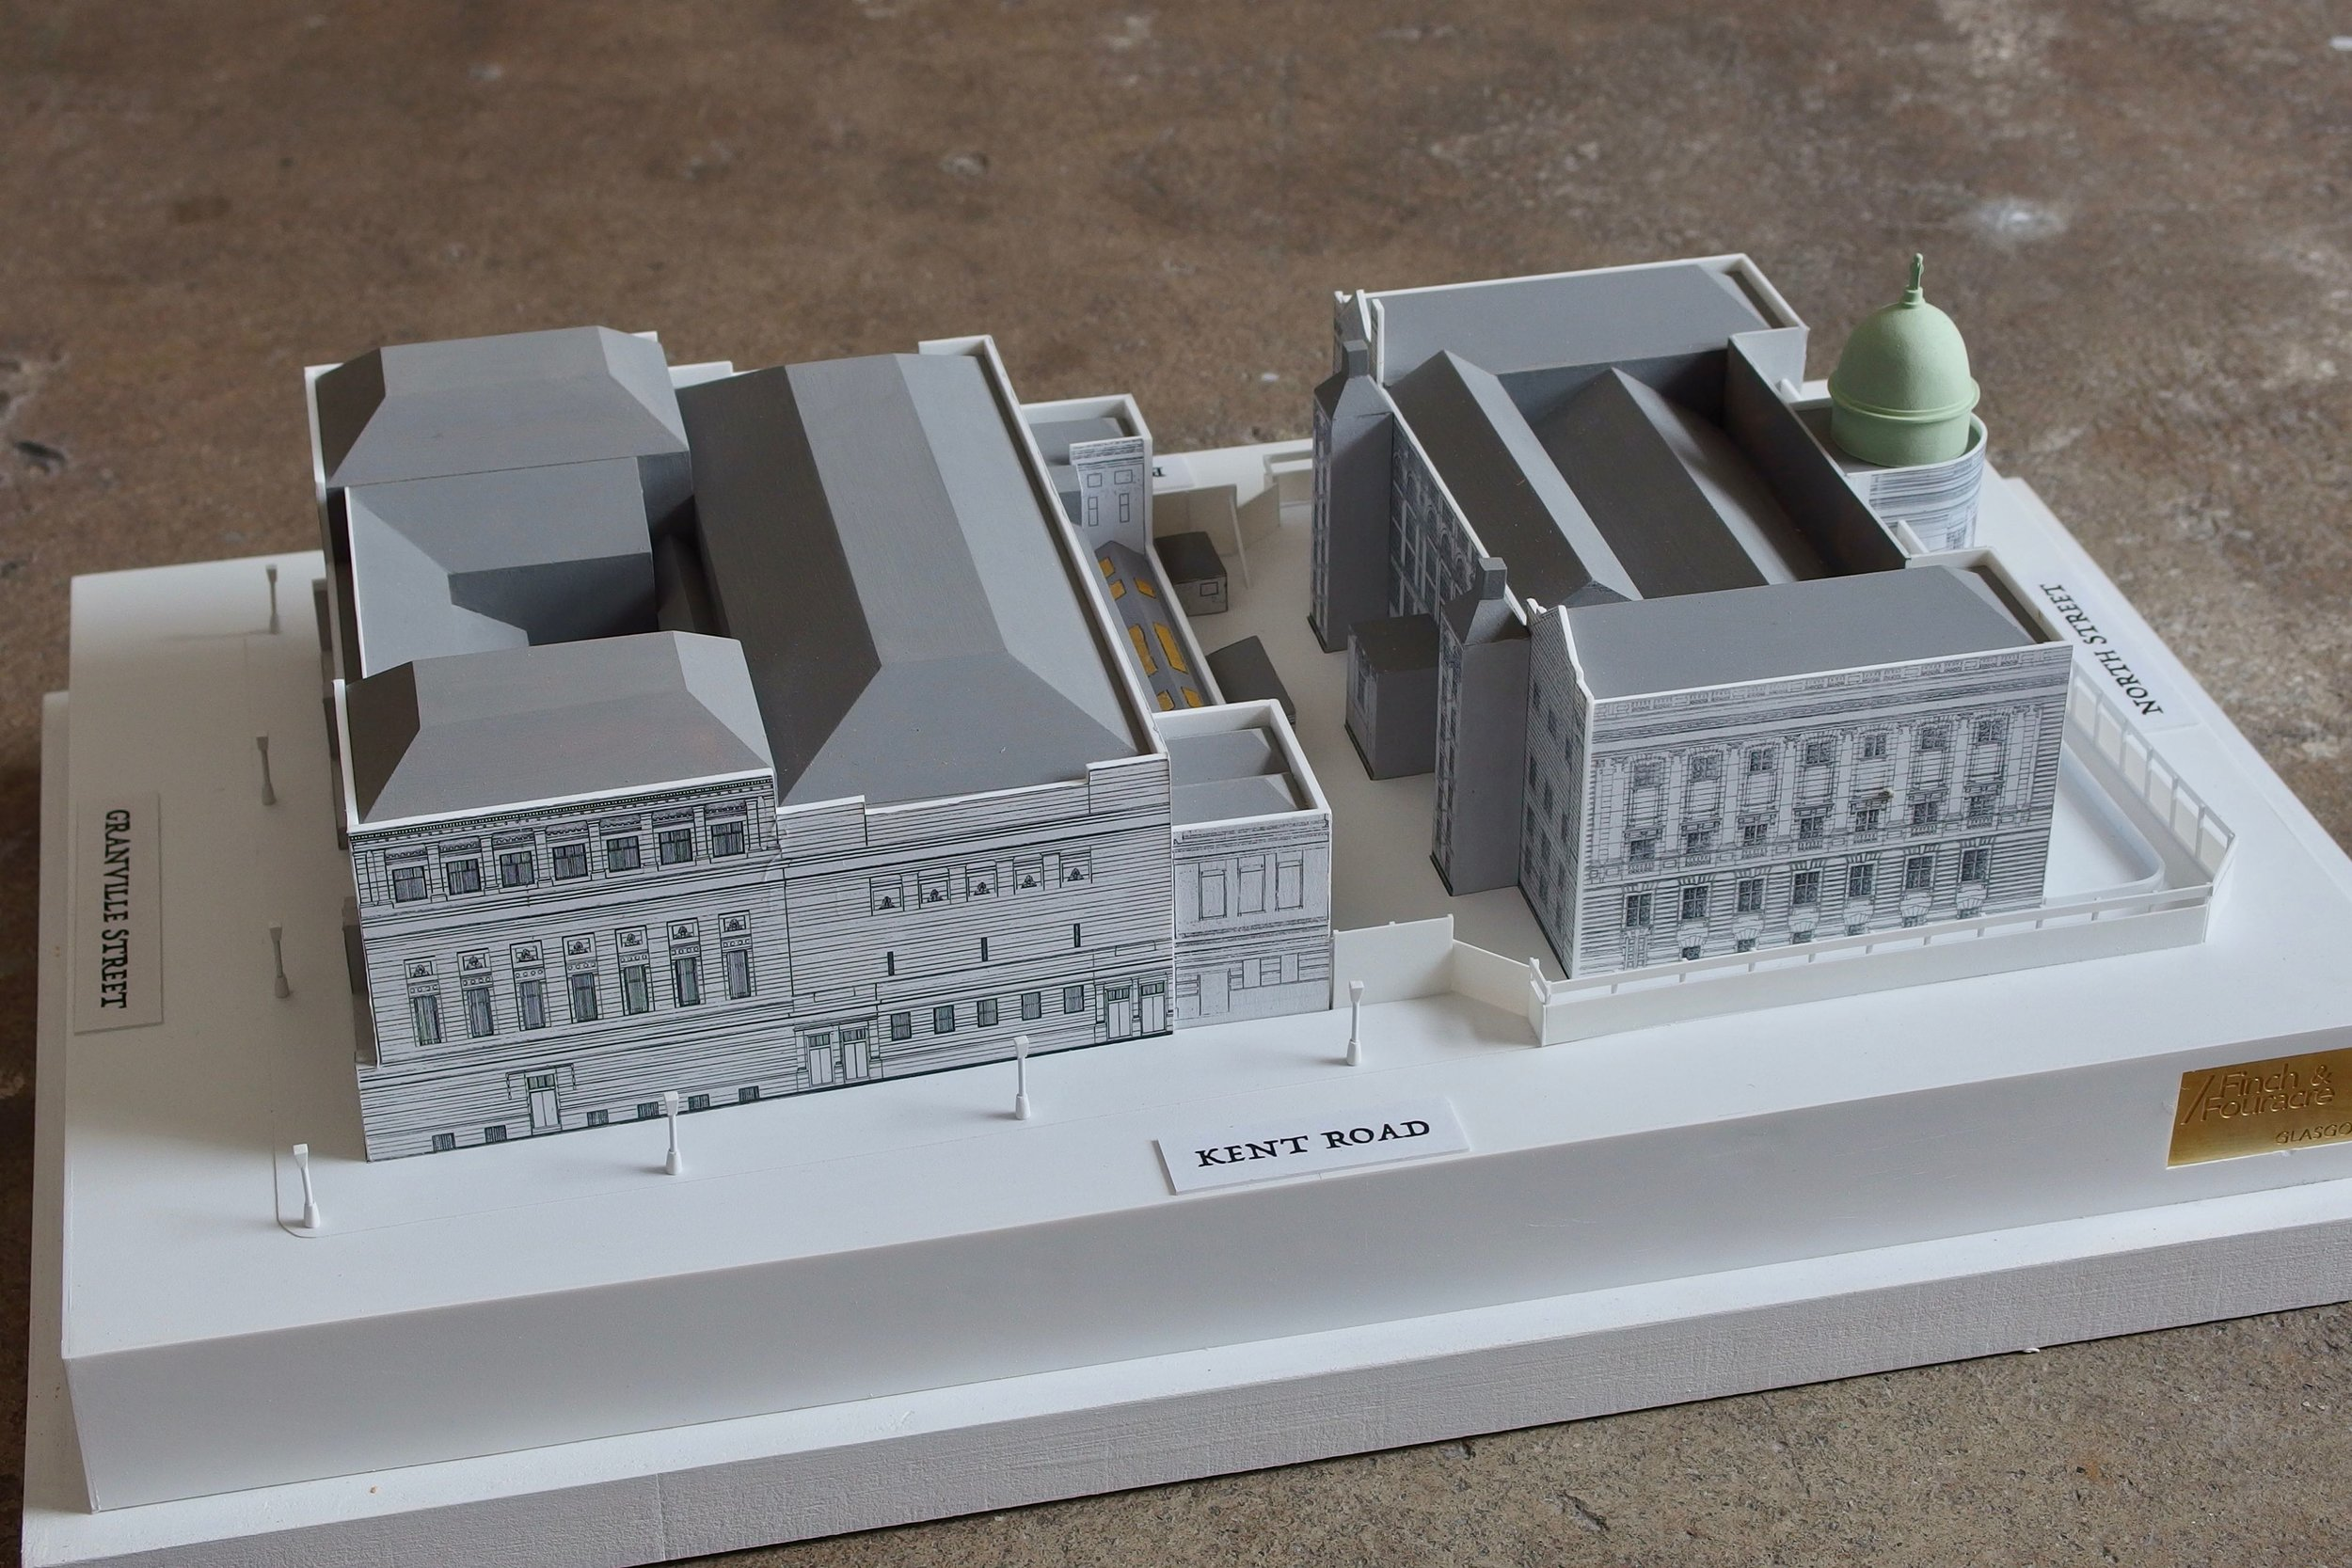 Model of St Andrew's Halls and the Mitchell Library